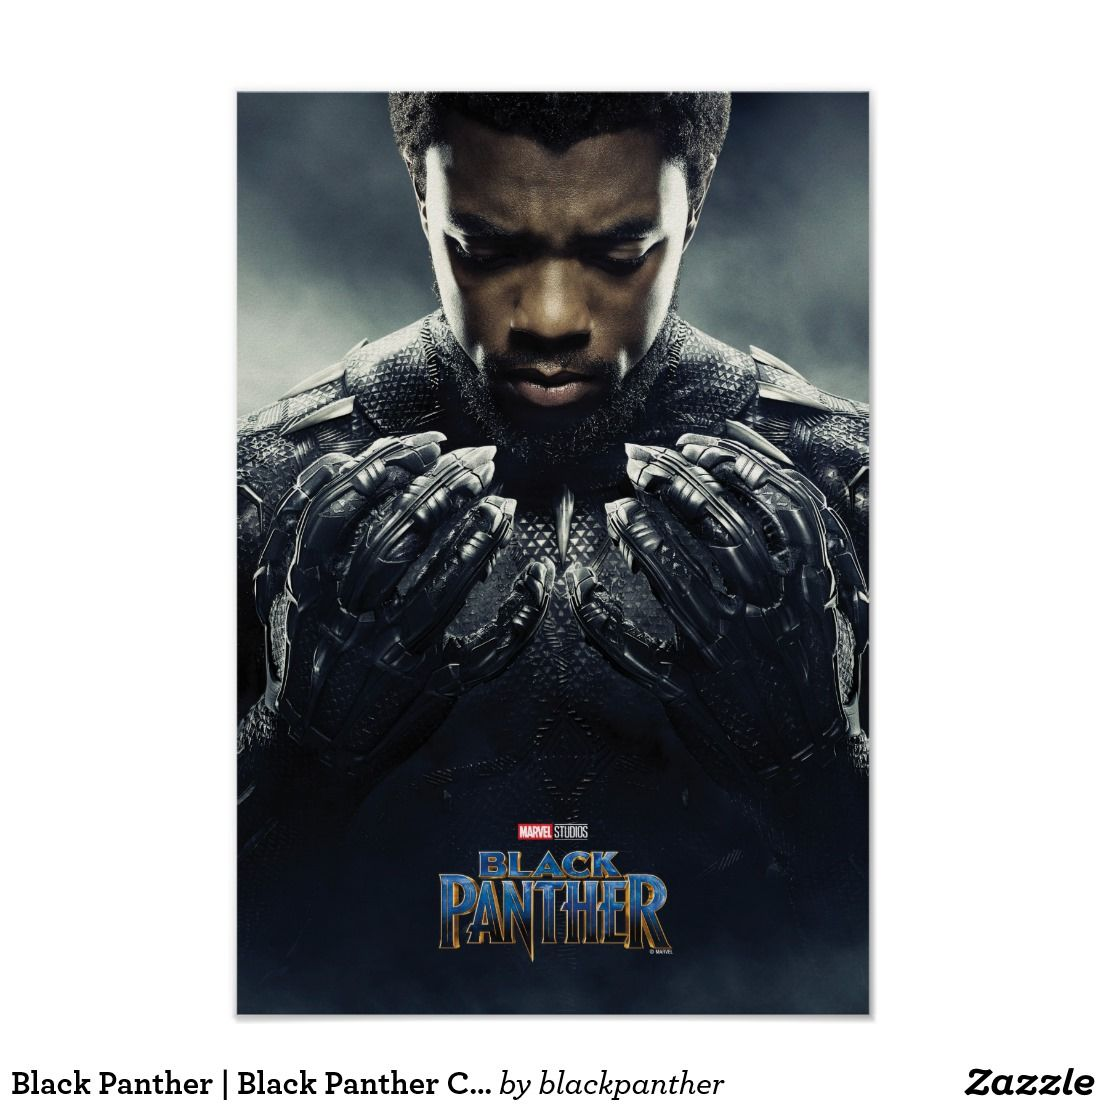 Black panther black panther character poster zazzle